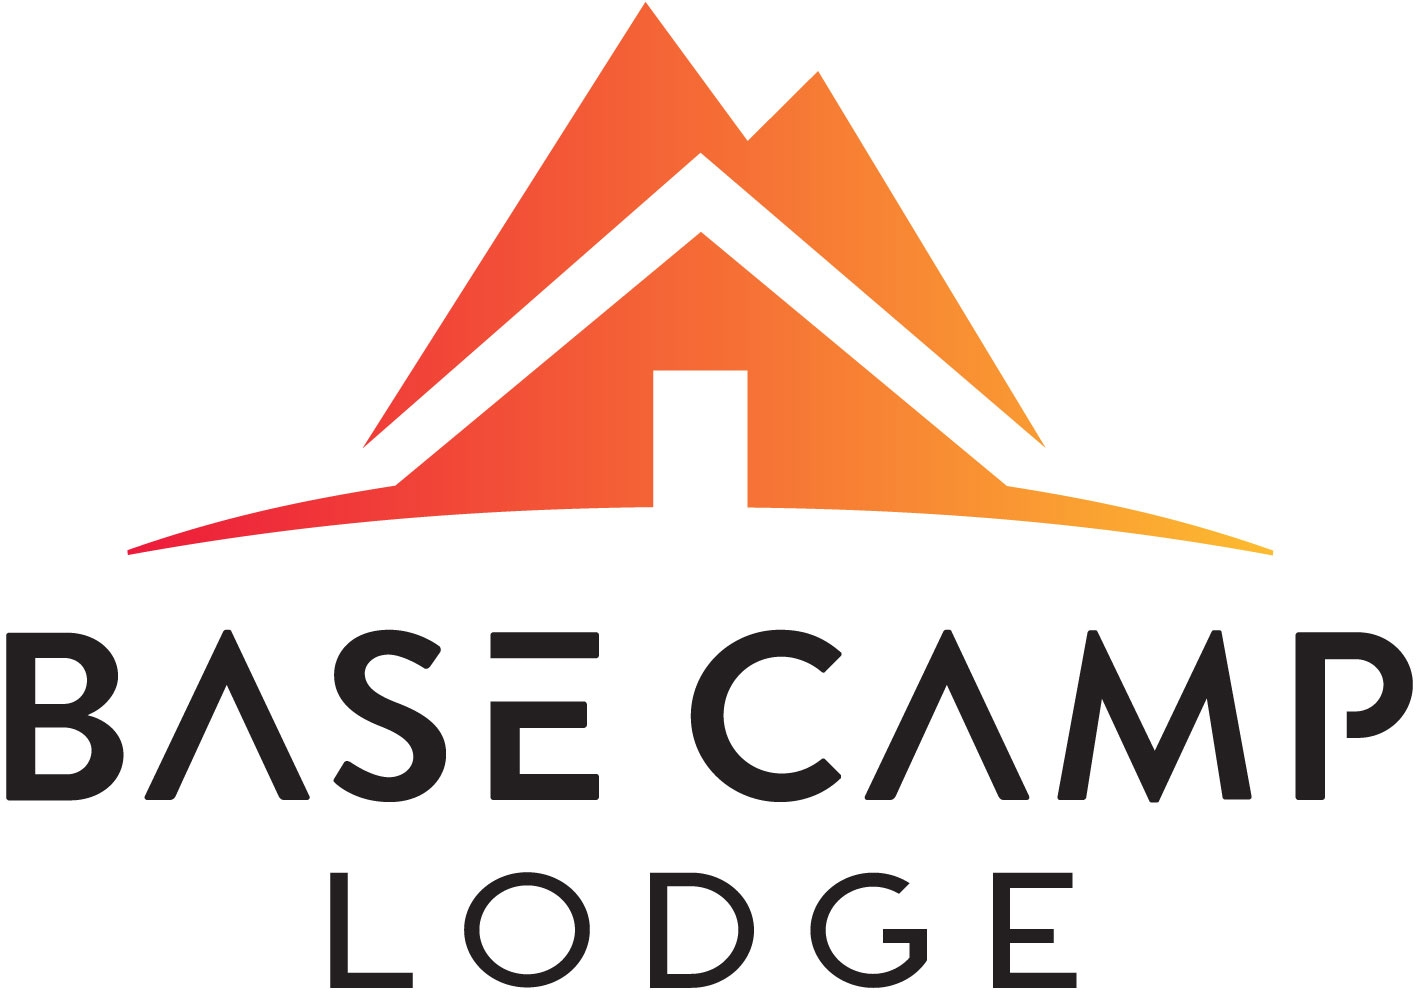 Base camp lodge